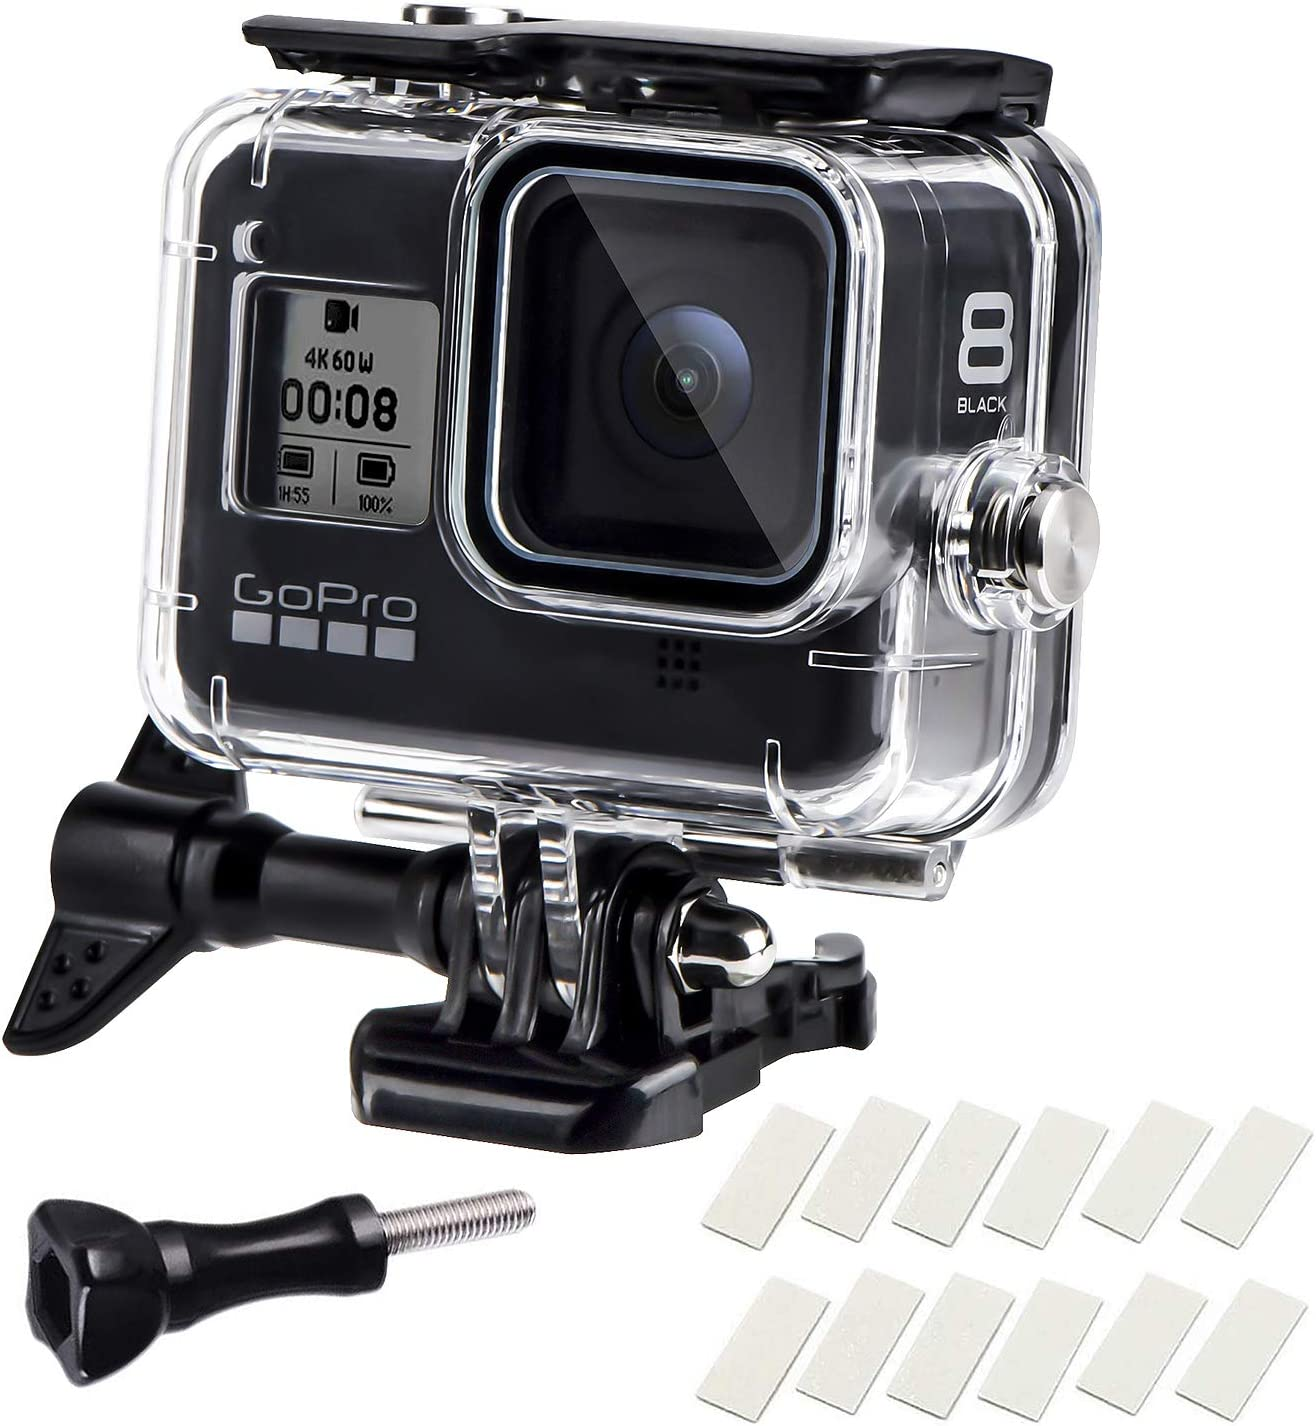 Waterproof Housing Case for GoPro Hero 8, 60M Diving Protective Housing Shell for Gopro Hero 8 Black Action Camera, Underwater Waterproof Protective Case with Quick Release Mount and Thumbscrew